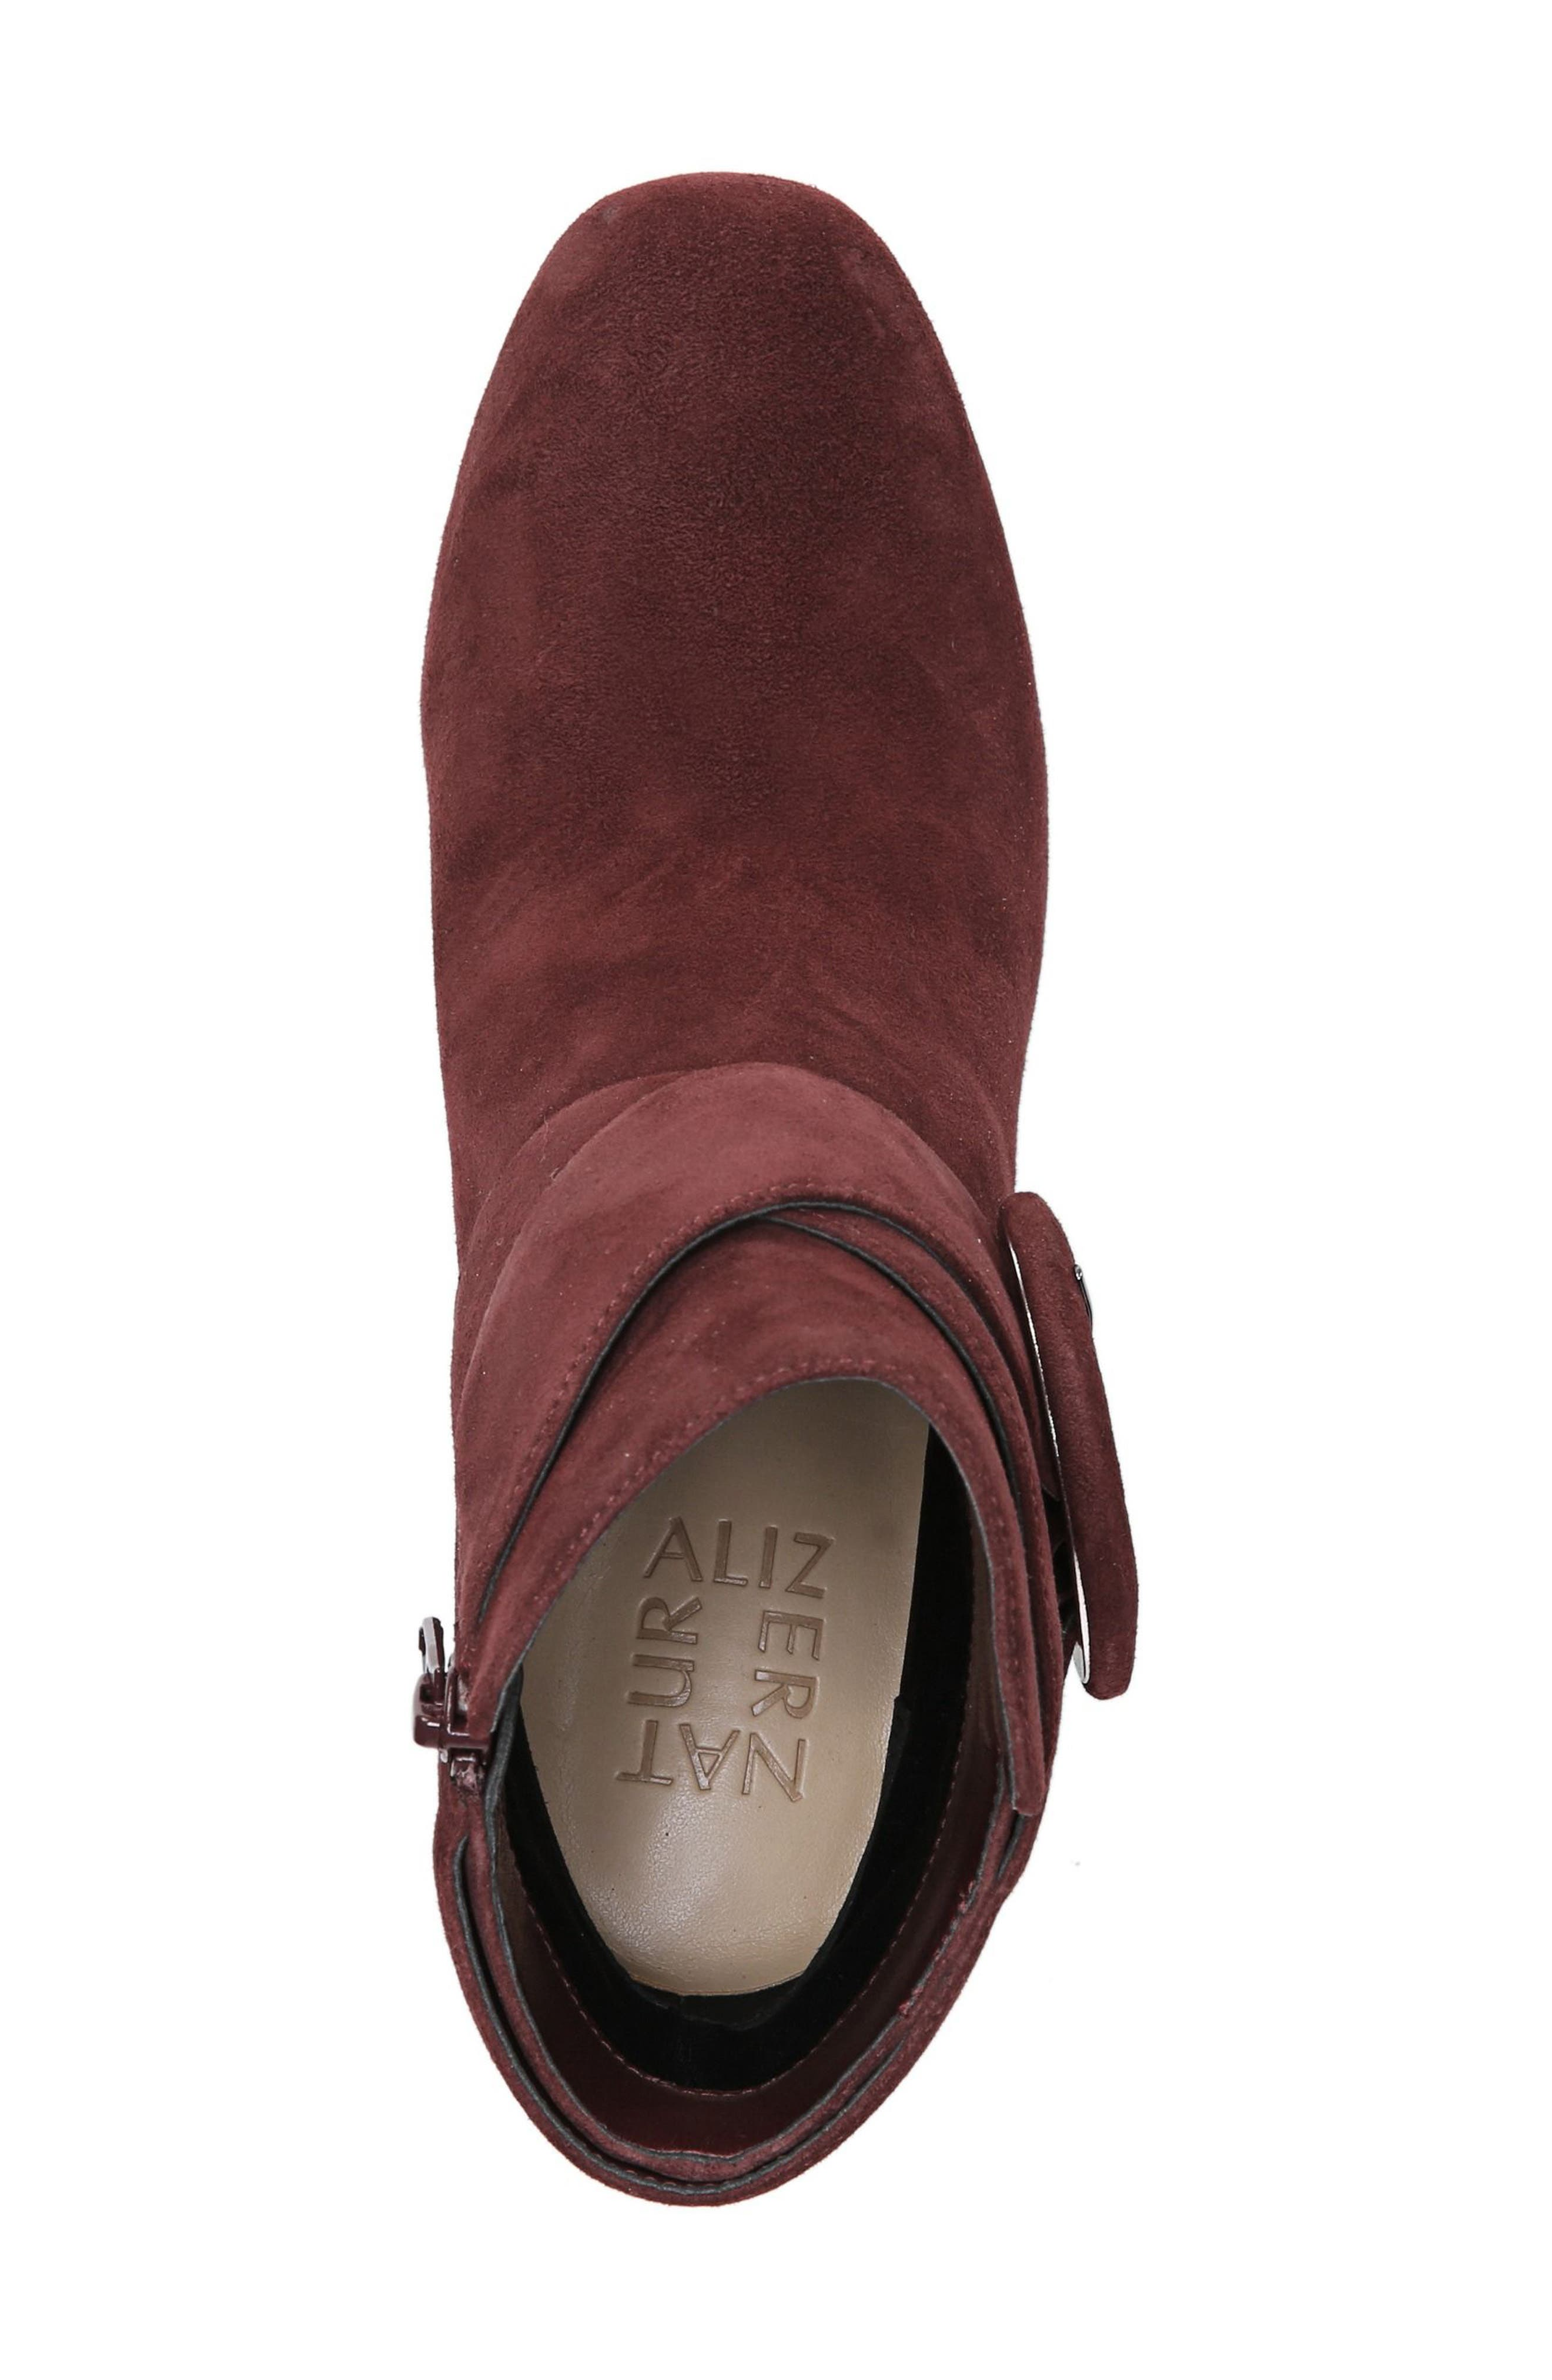 Nautralizer Rae Bootie,                             Alternate thumbnail 5, color,                             Bordo Leather